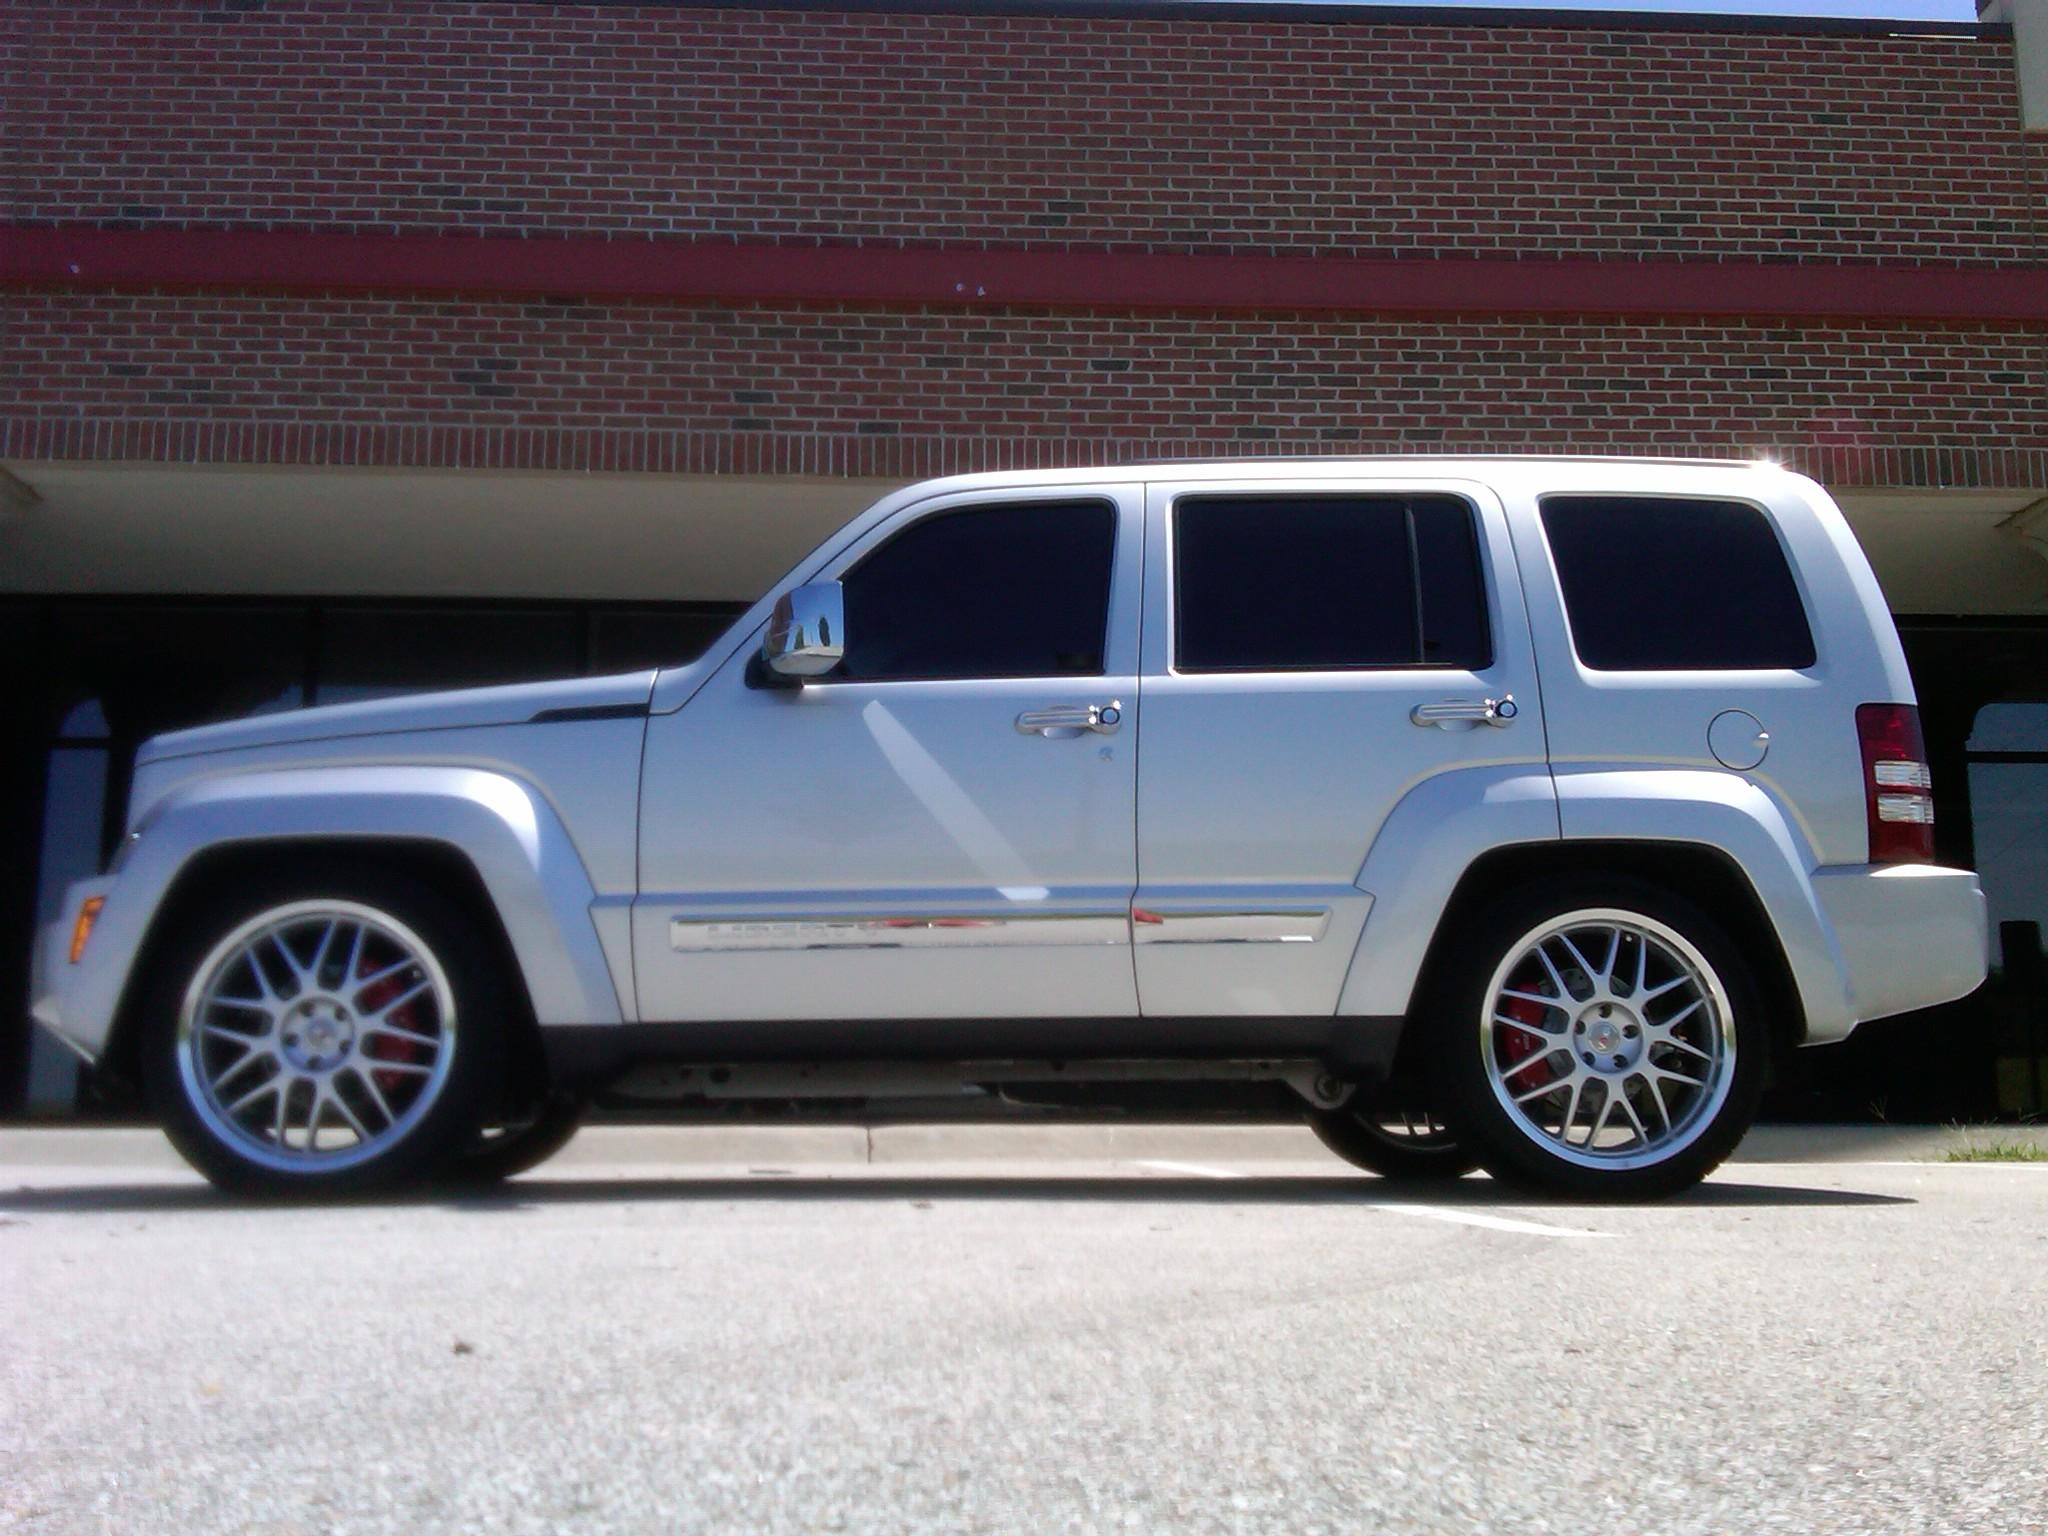 Ford Fusion Mods >> Byookanun 2009 Jeep Liberty Specs, Photos, Modification ...